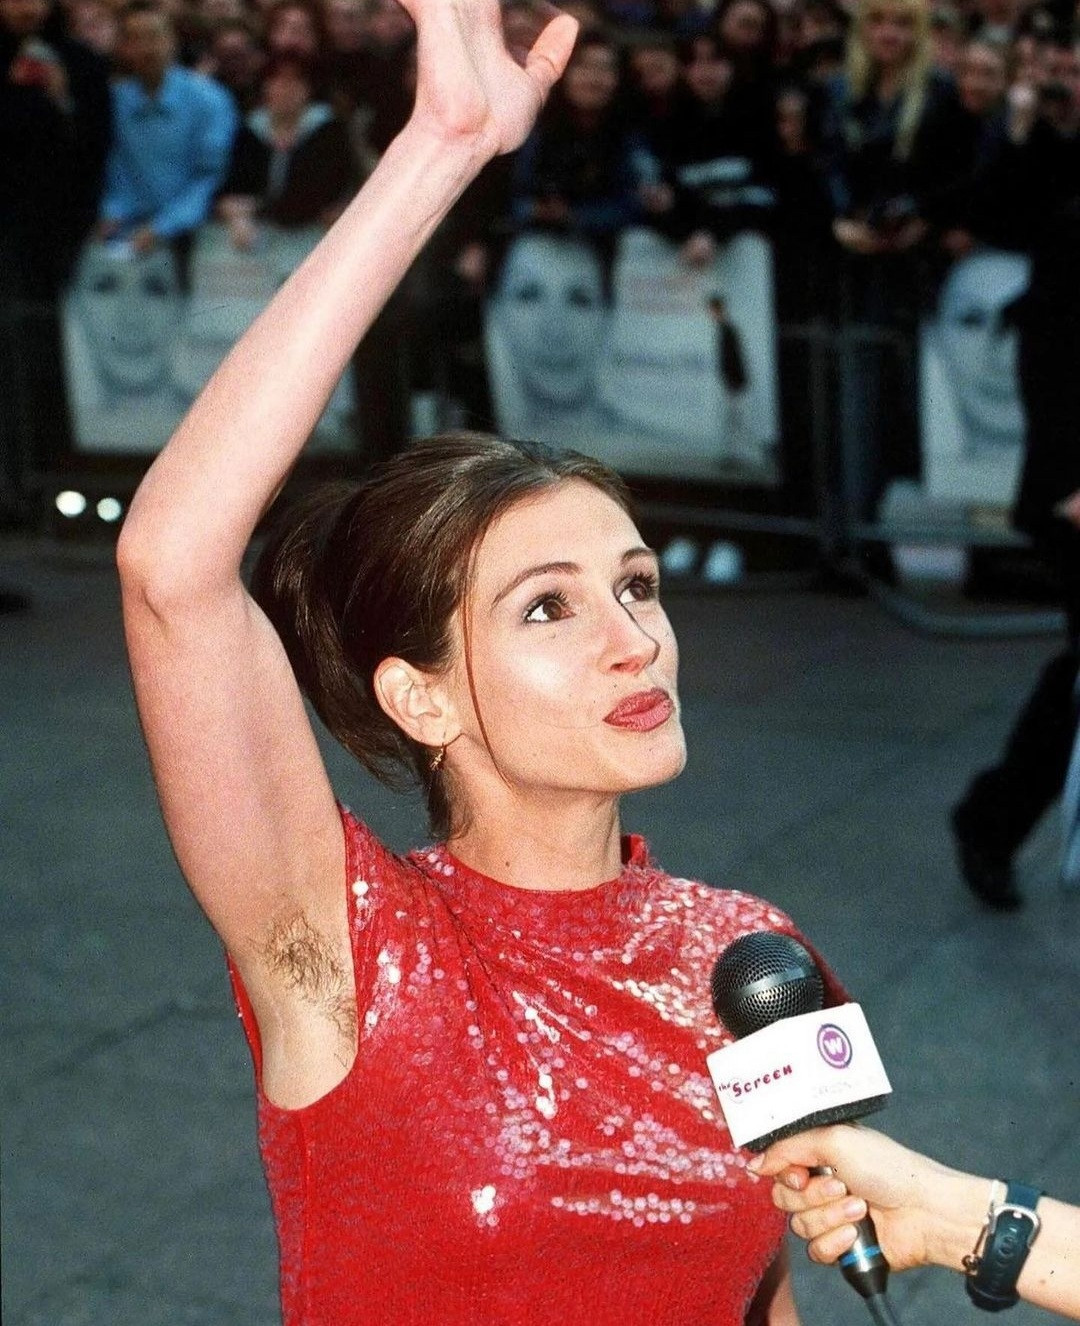 Female celebrities who have displayed armpit hair at public functions (photos)